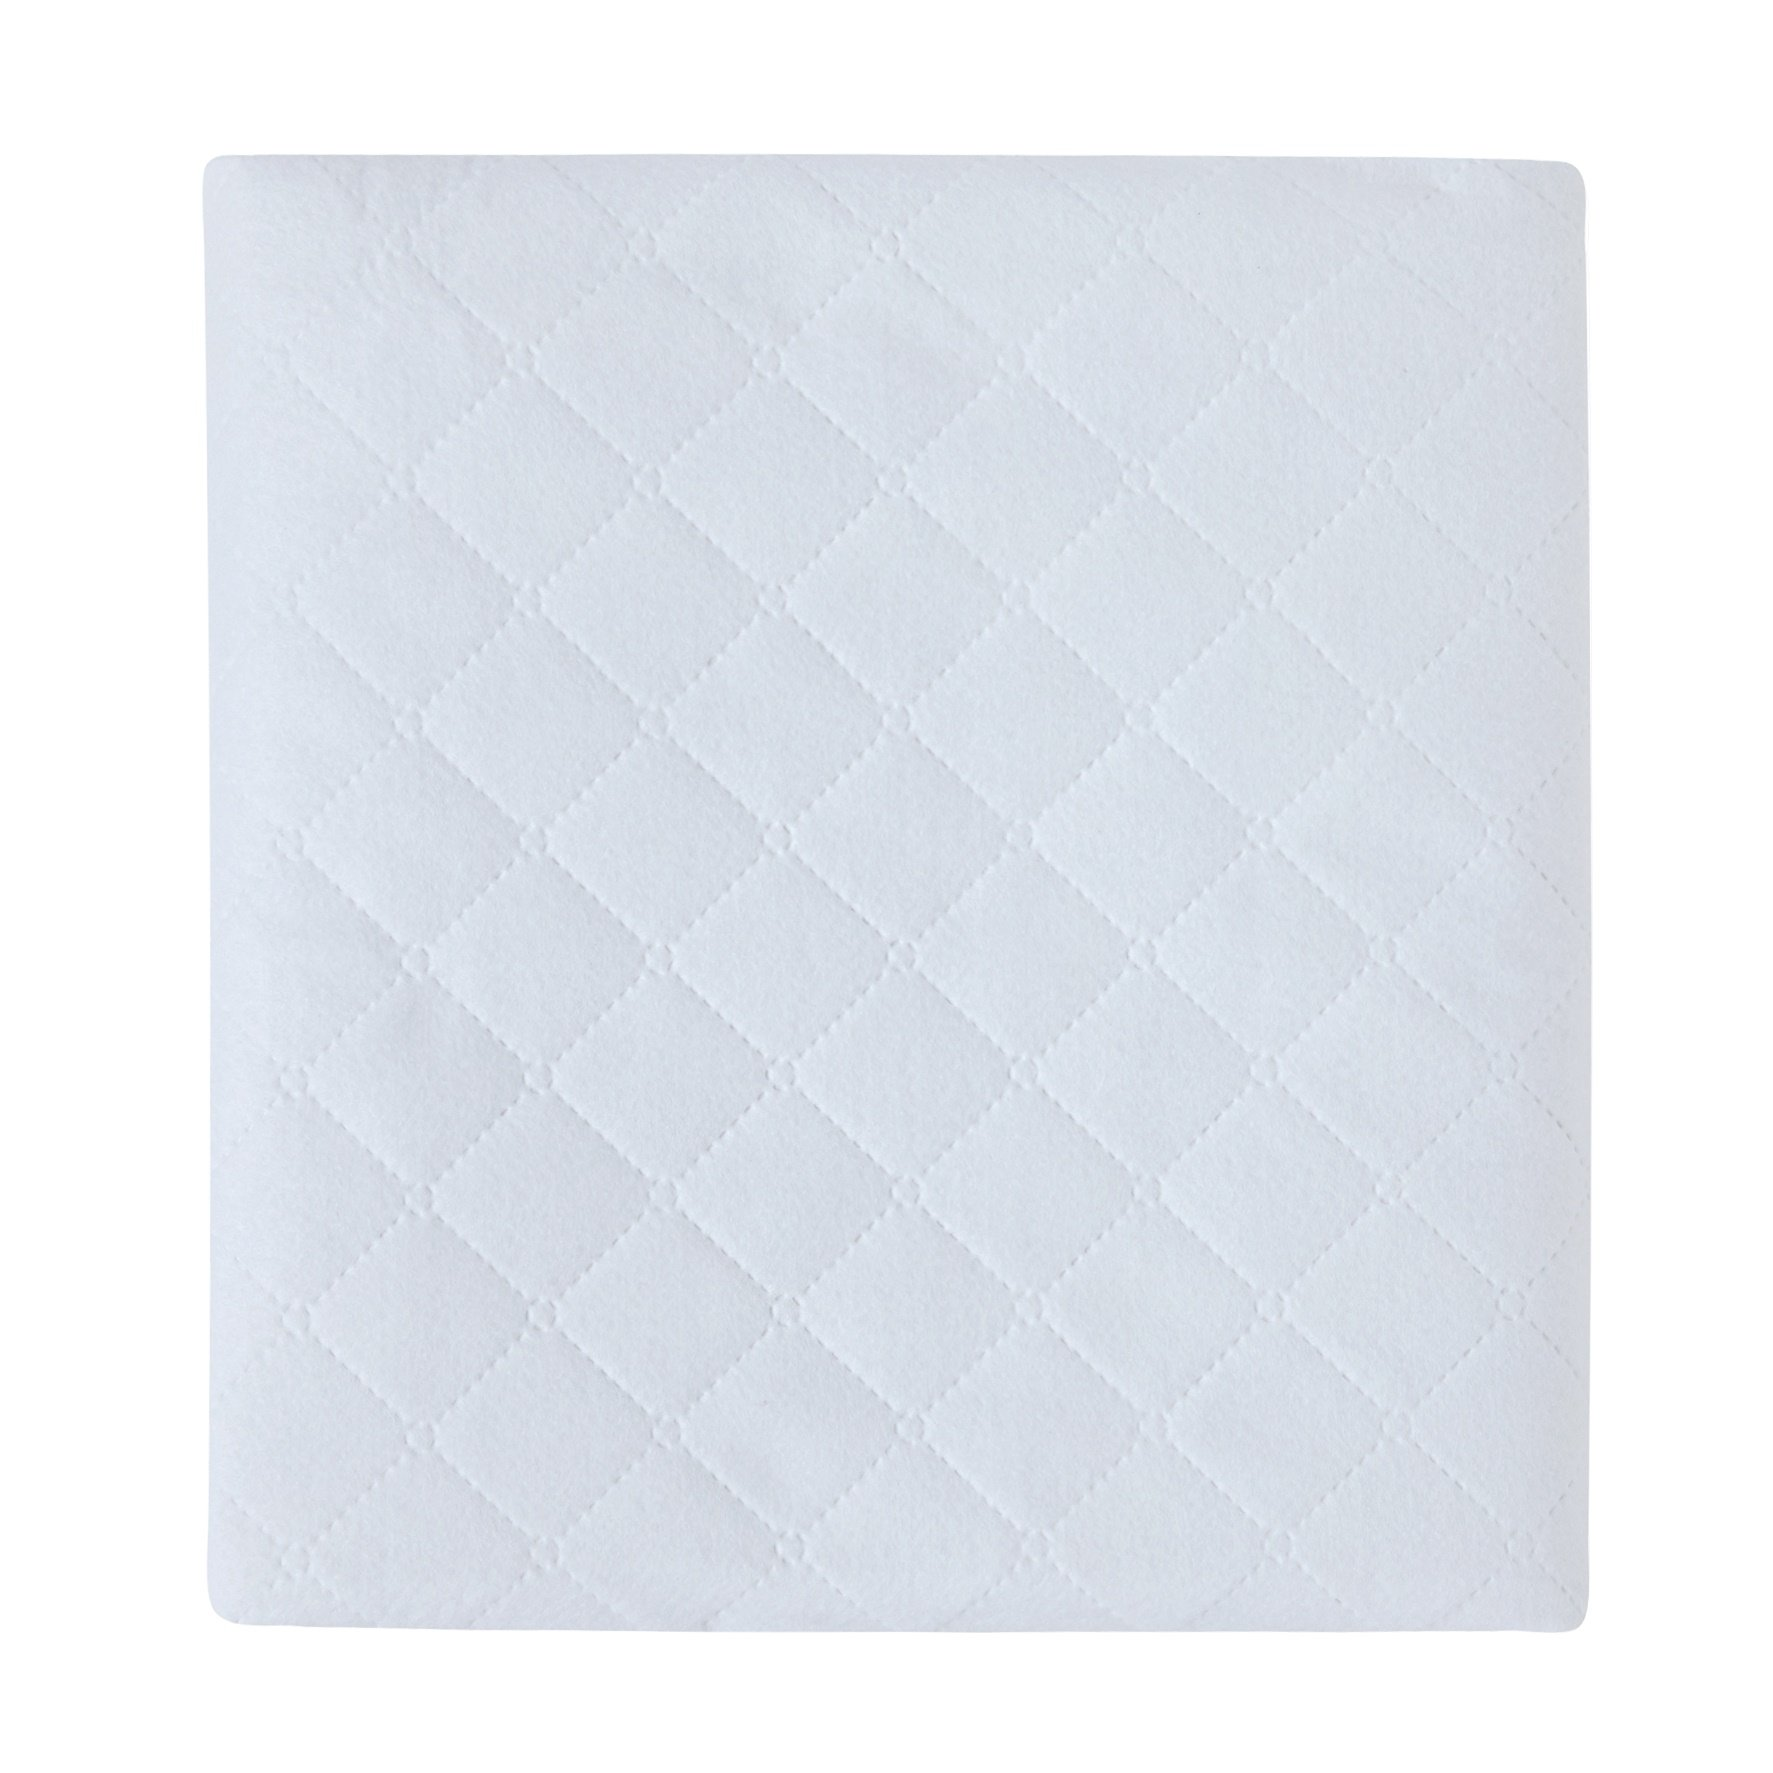 Carter's 2-Pack Waterproof Fitted Crib Mattress Pad, White